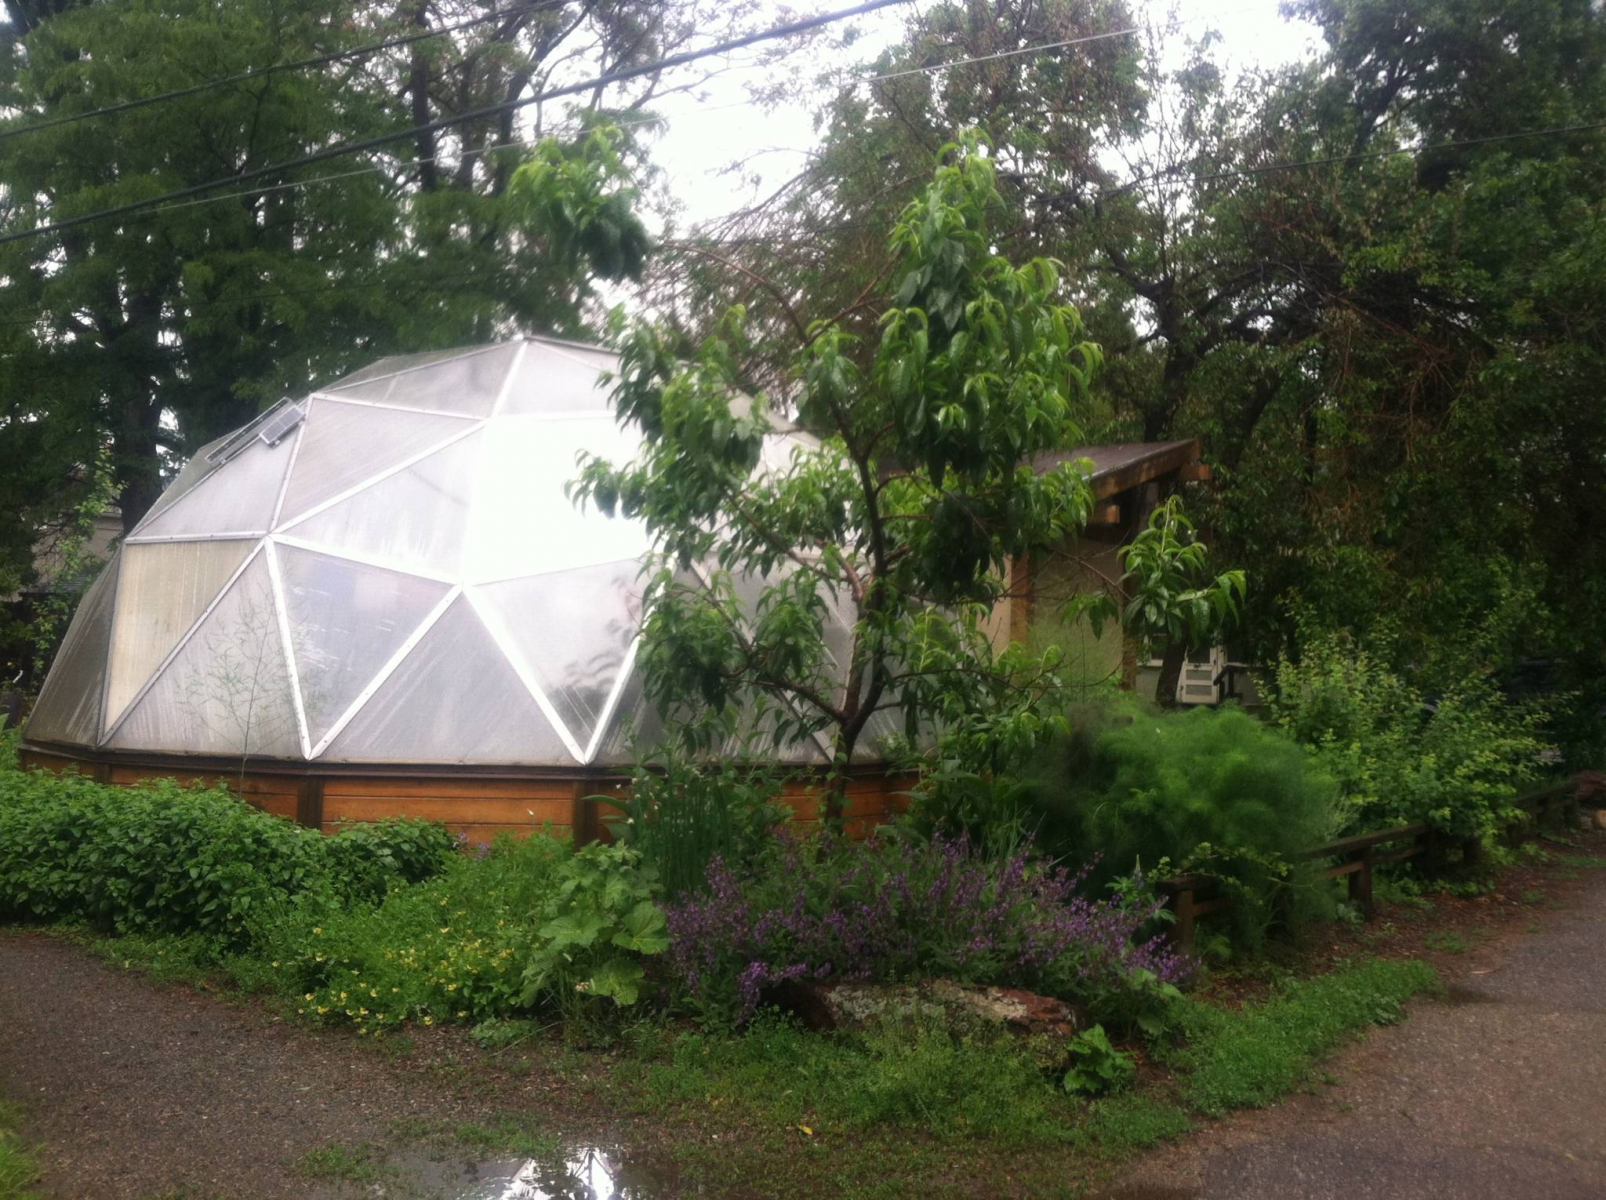 geodesic dome greenhouse with trees